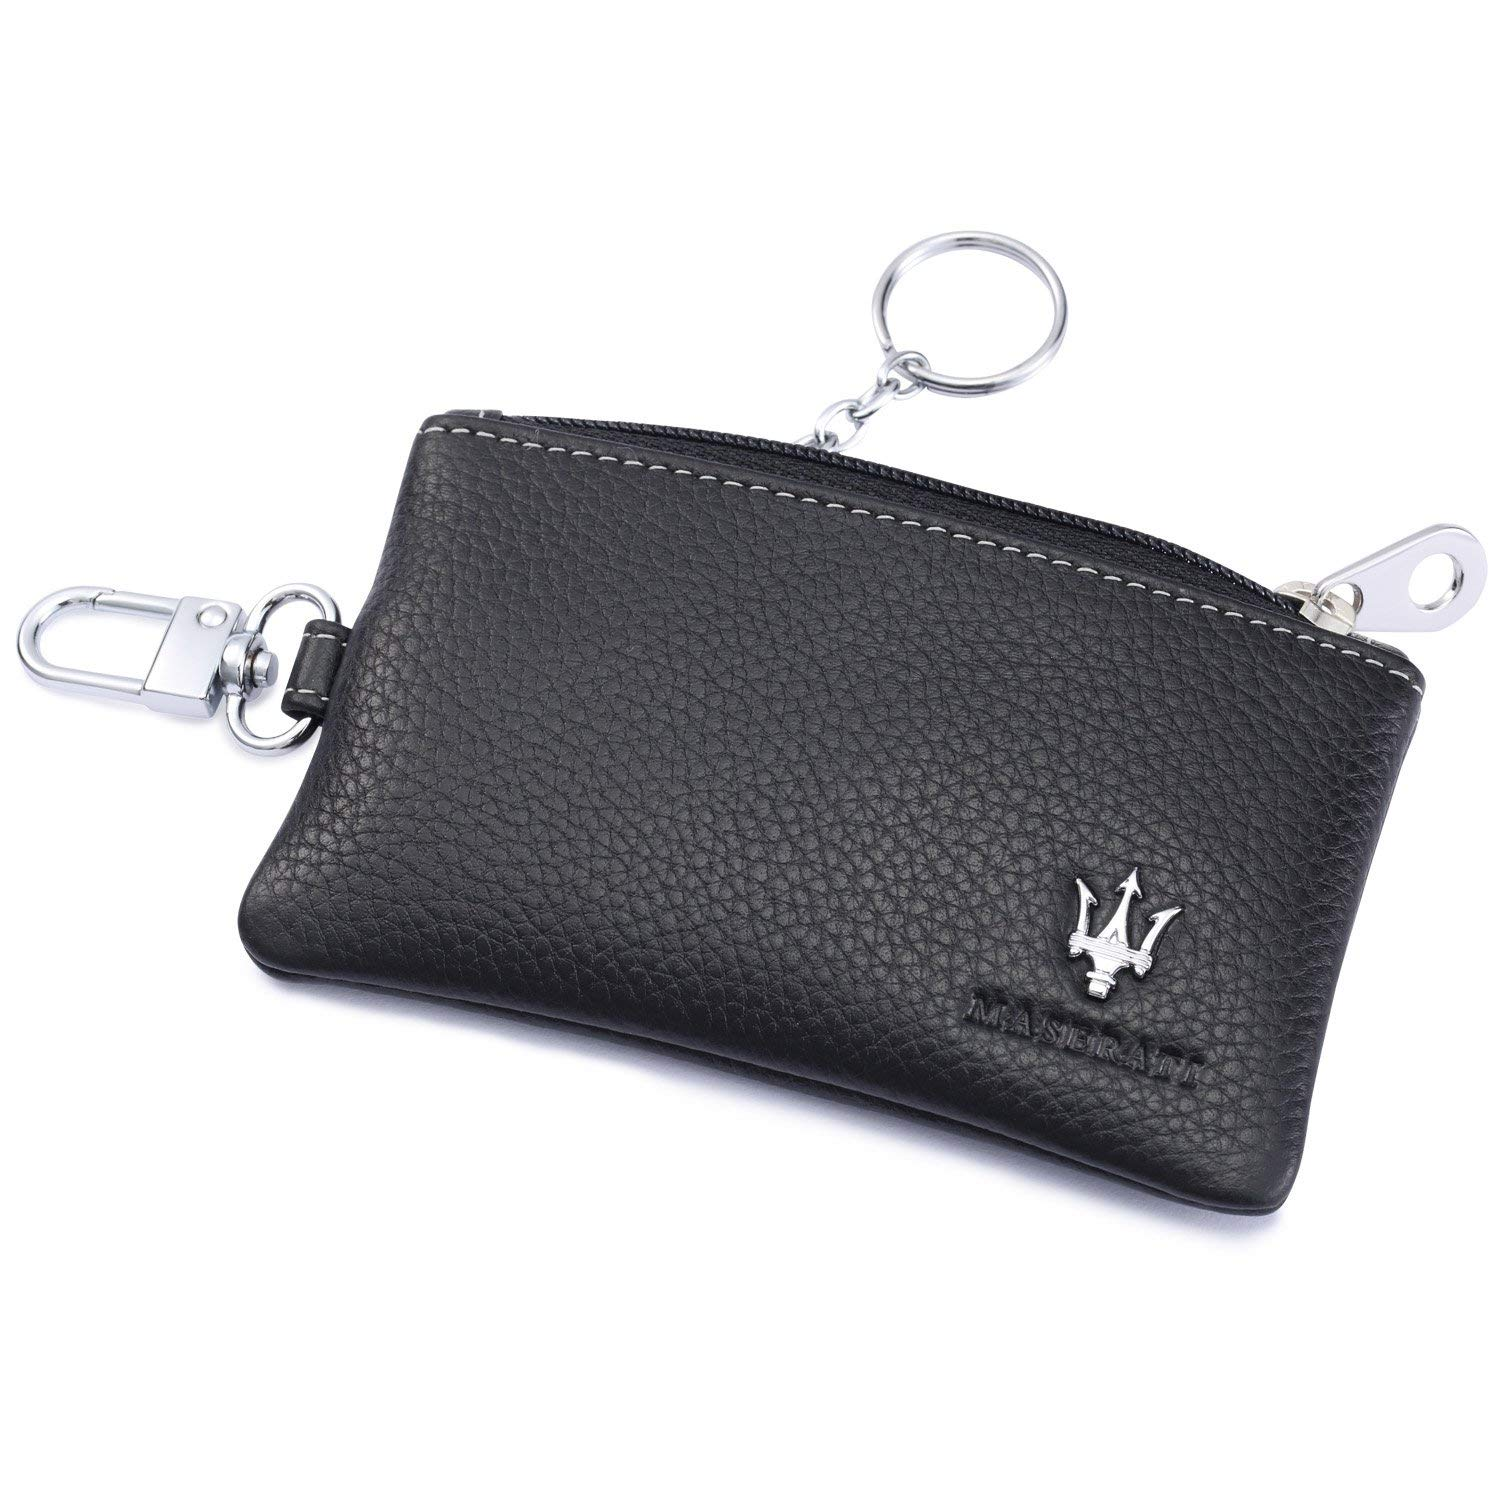 Maserati Car Key Holder Remote Cover Fob with 1 Metal Keychain - Genuine Leather